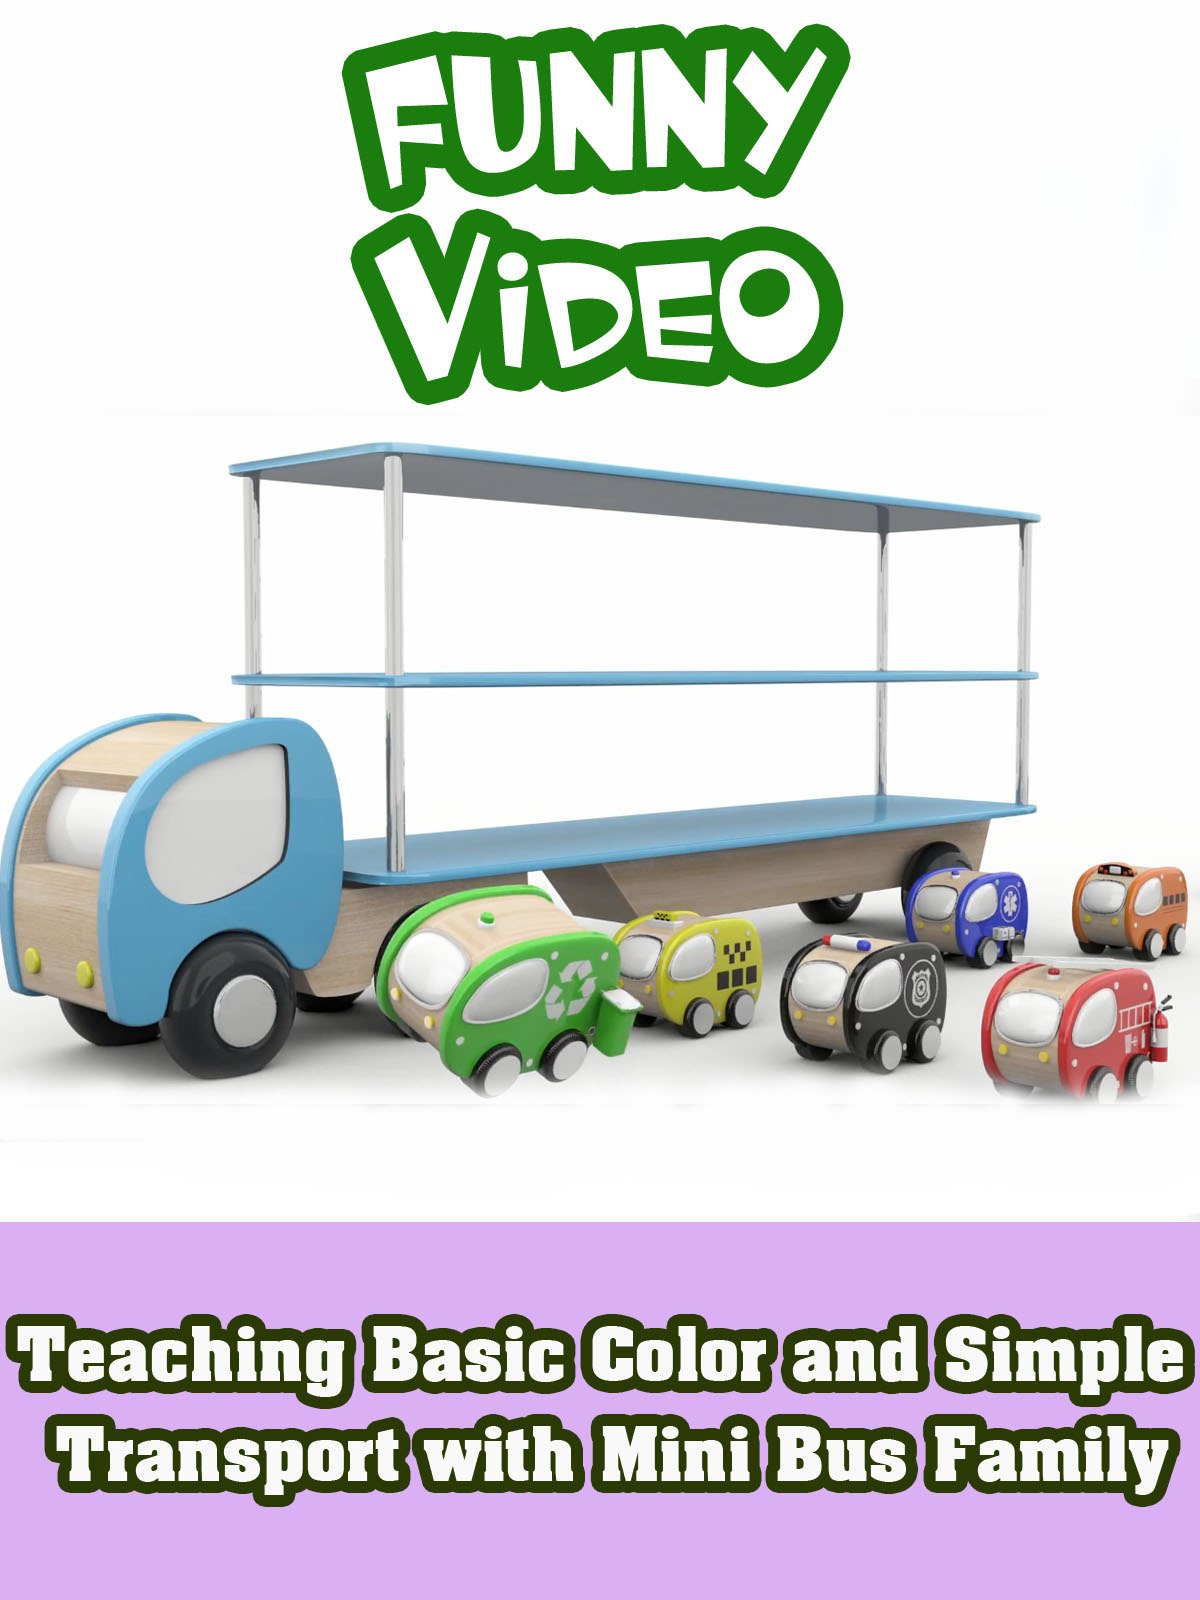 Teaching Basic Color and Simple Transport with Mini bus Family